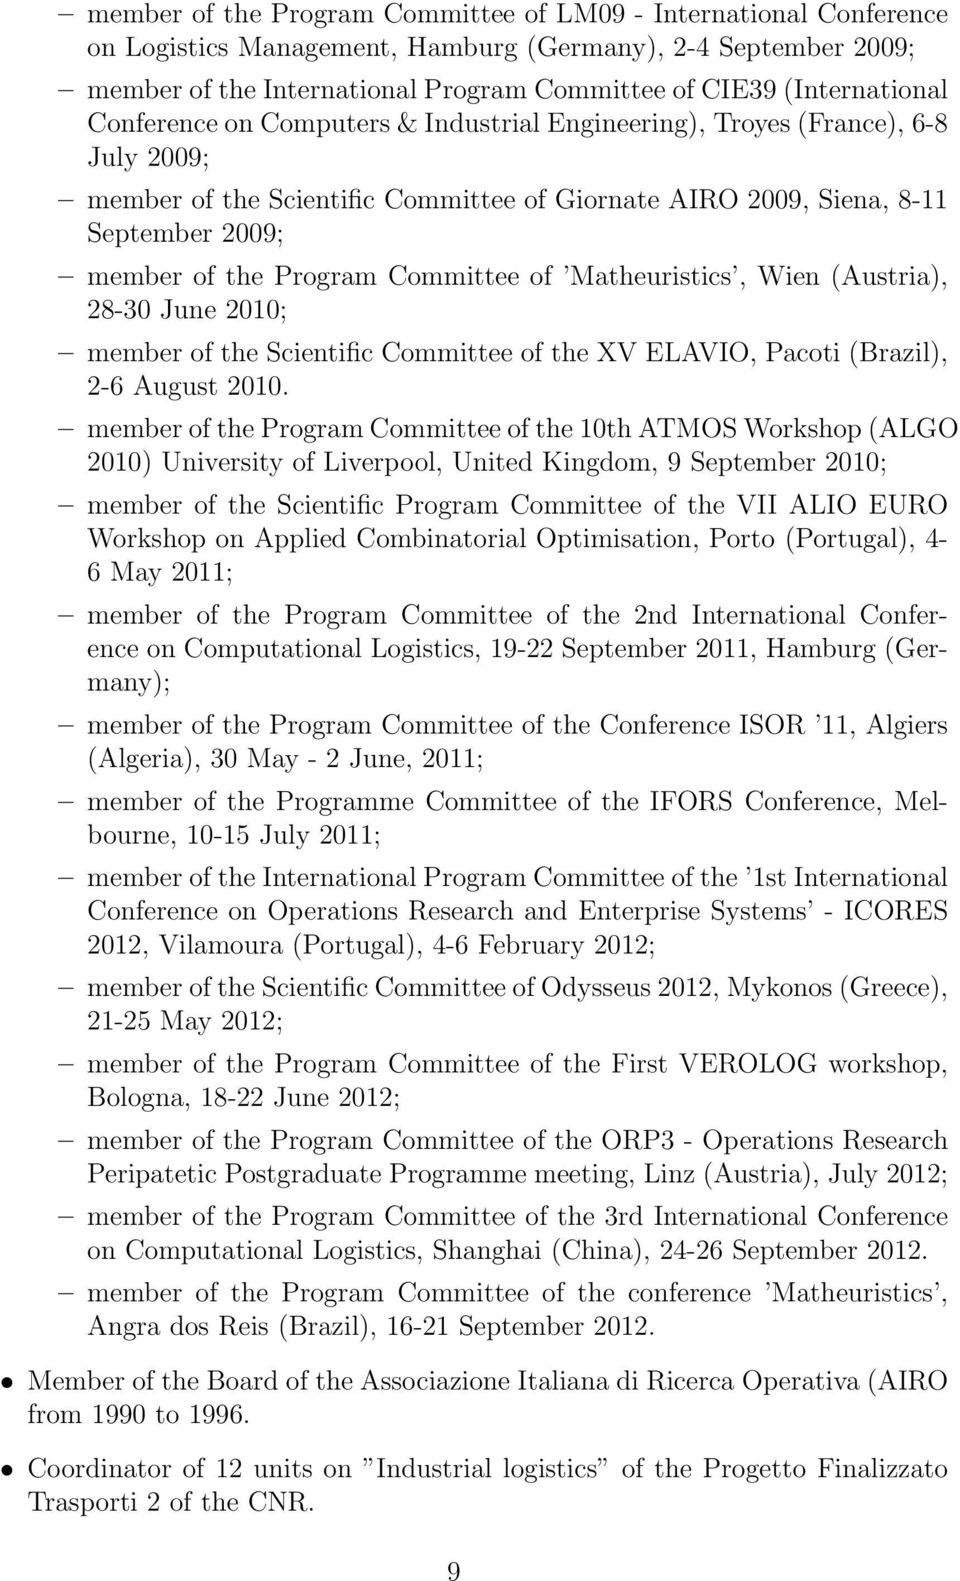 Program Committee of Matheuristics, Wien (Austria), 28-30 June 2010; member of the Scientific Committee of the XV ELAVIO, Pacoti (Brazil), 2-6 August 2010.